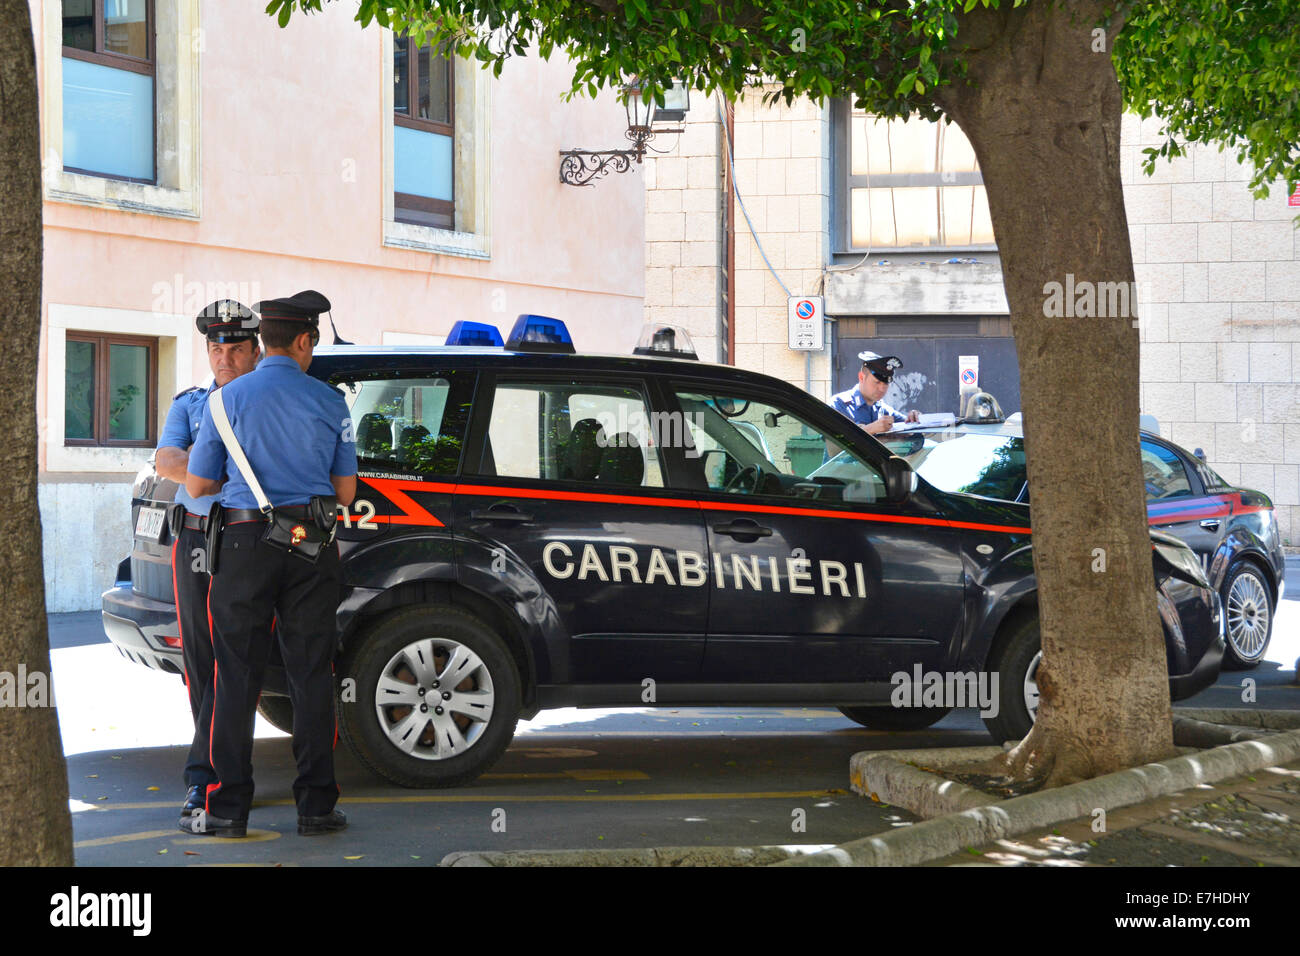 Carabinieri officers beside parked cars outside police station in Taormina Province of Messina Sicily Italy - Stock Image